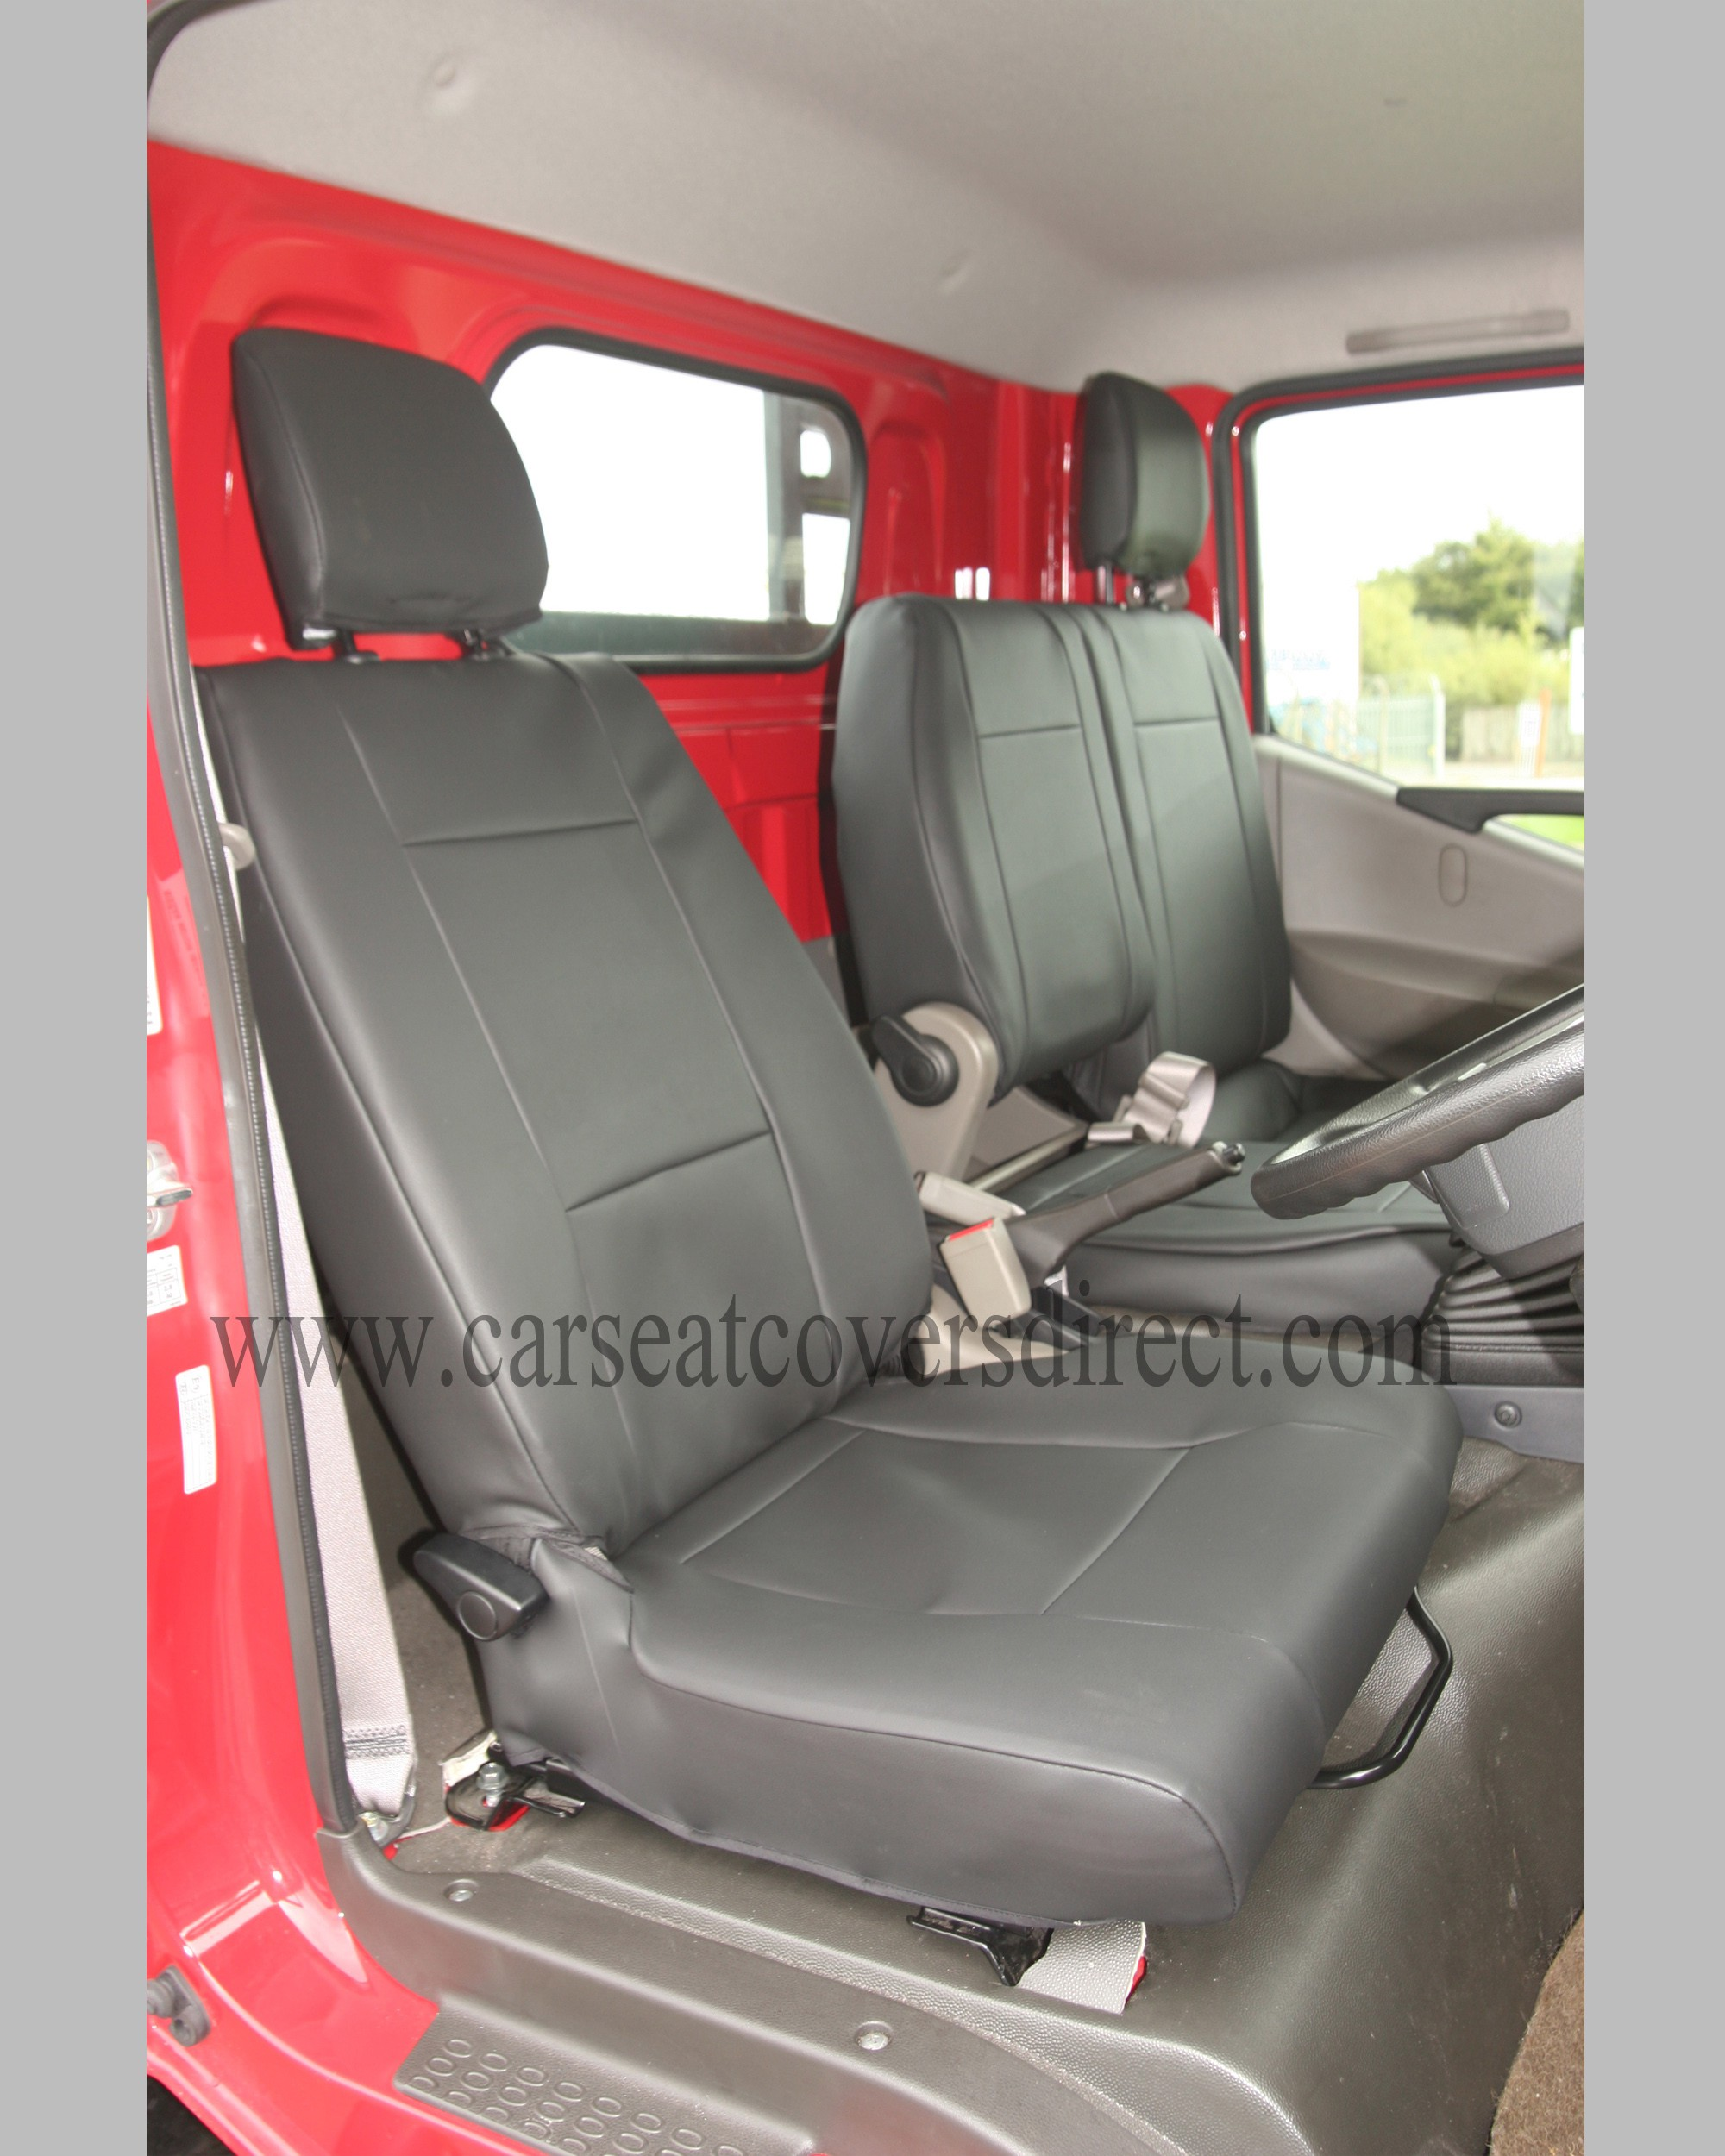 NISSAN CABSTAR Seat Covers